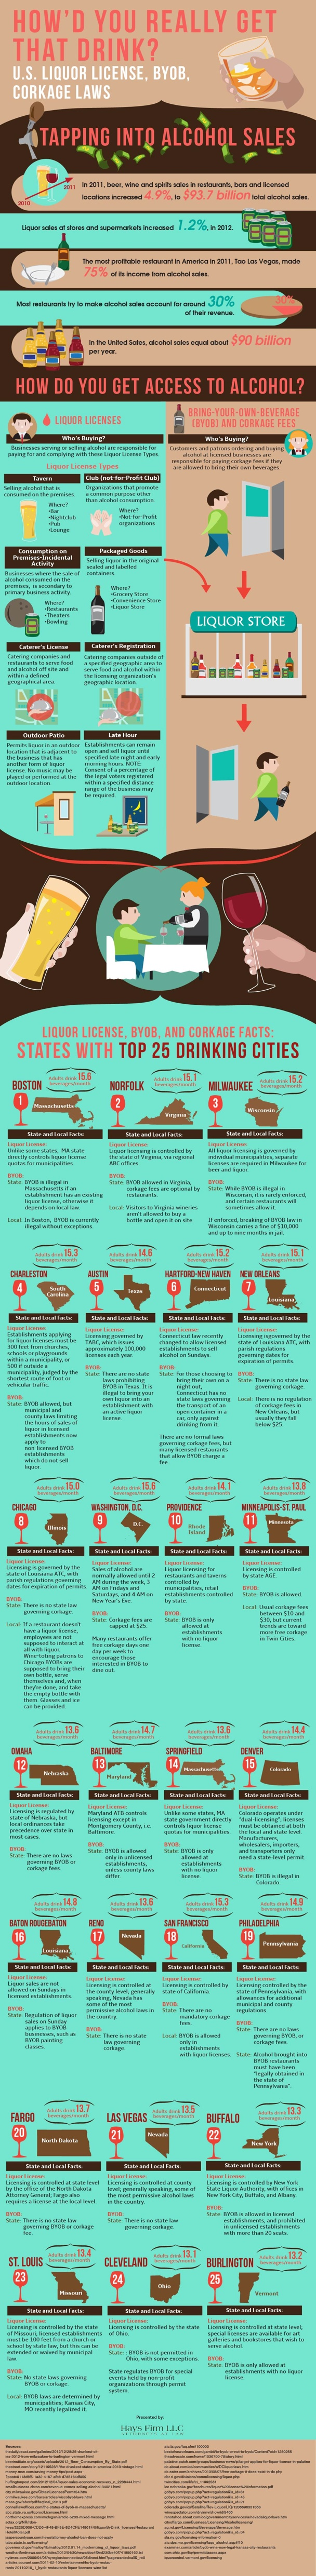 liquor-laws-infographic